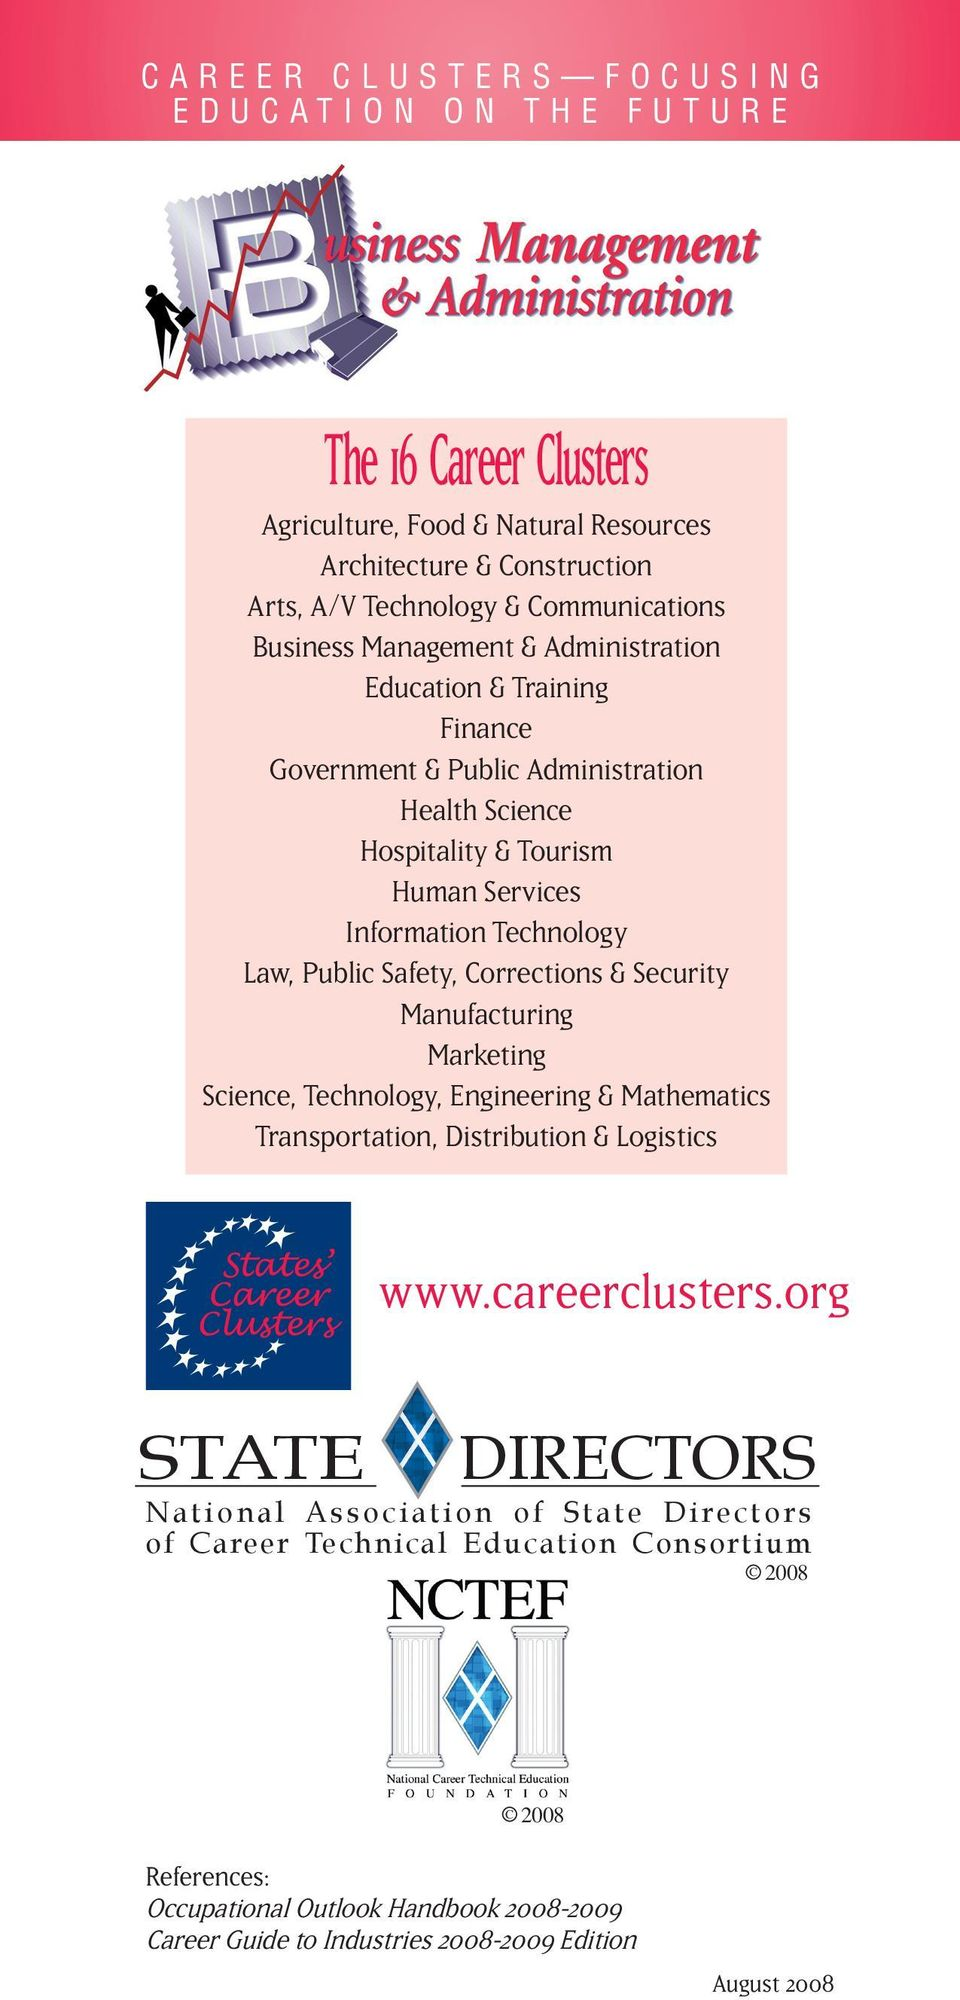 Public Safety, Corrections & Security Manufacturing Marketing Science, Technology, Engineering & Mathematics Transportation, Distribution & Logistics www.careerclusters.